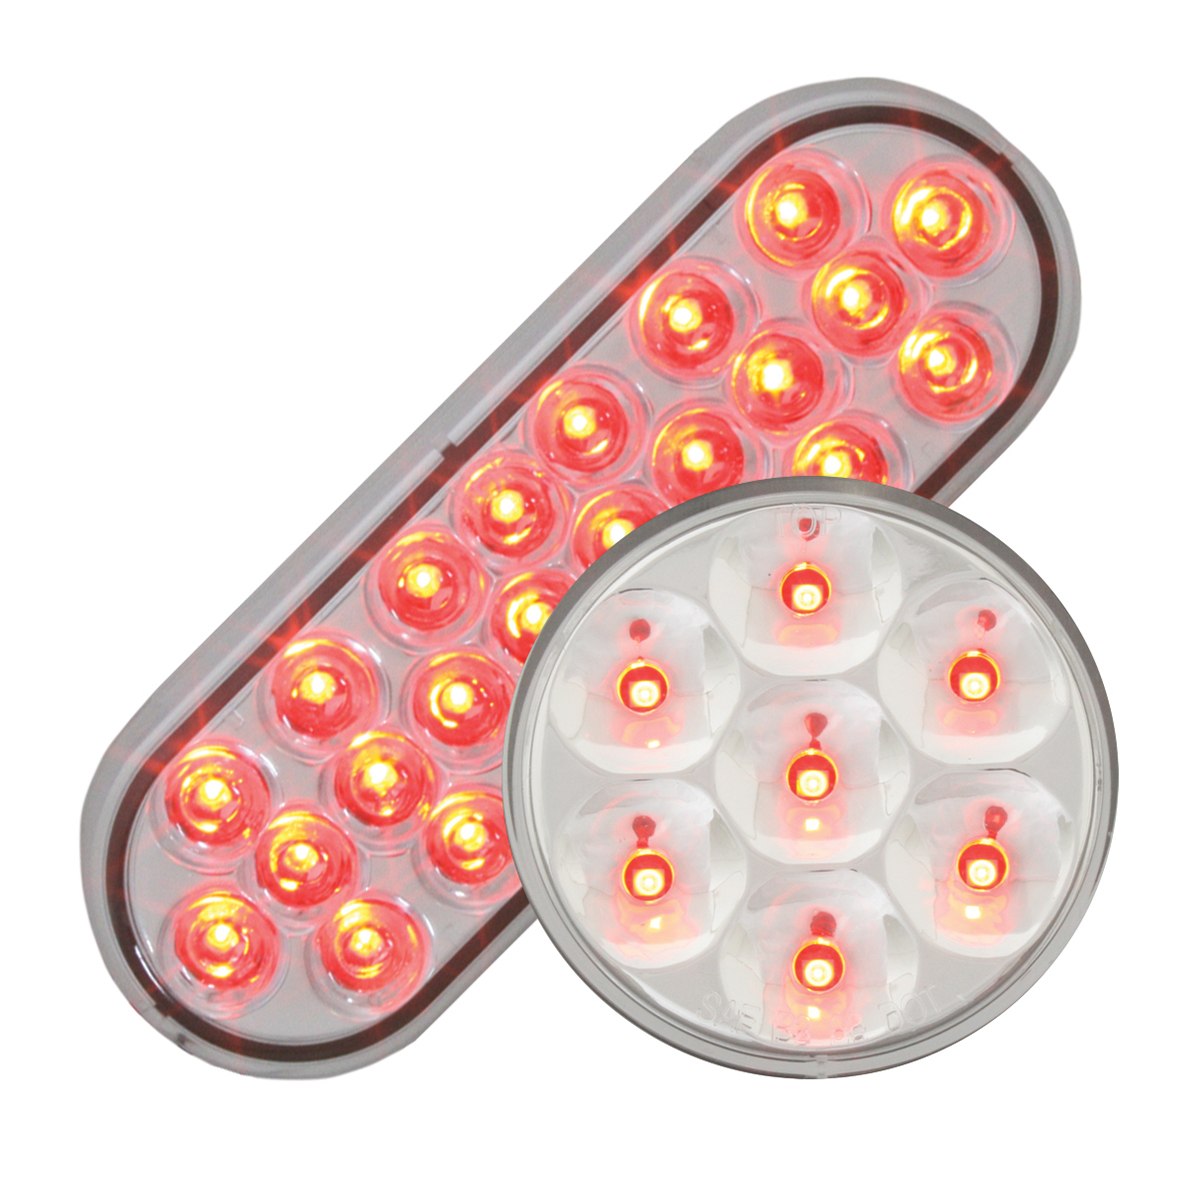 #78234/#76543 Pearl LED Flat - Red/Clear